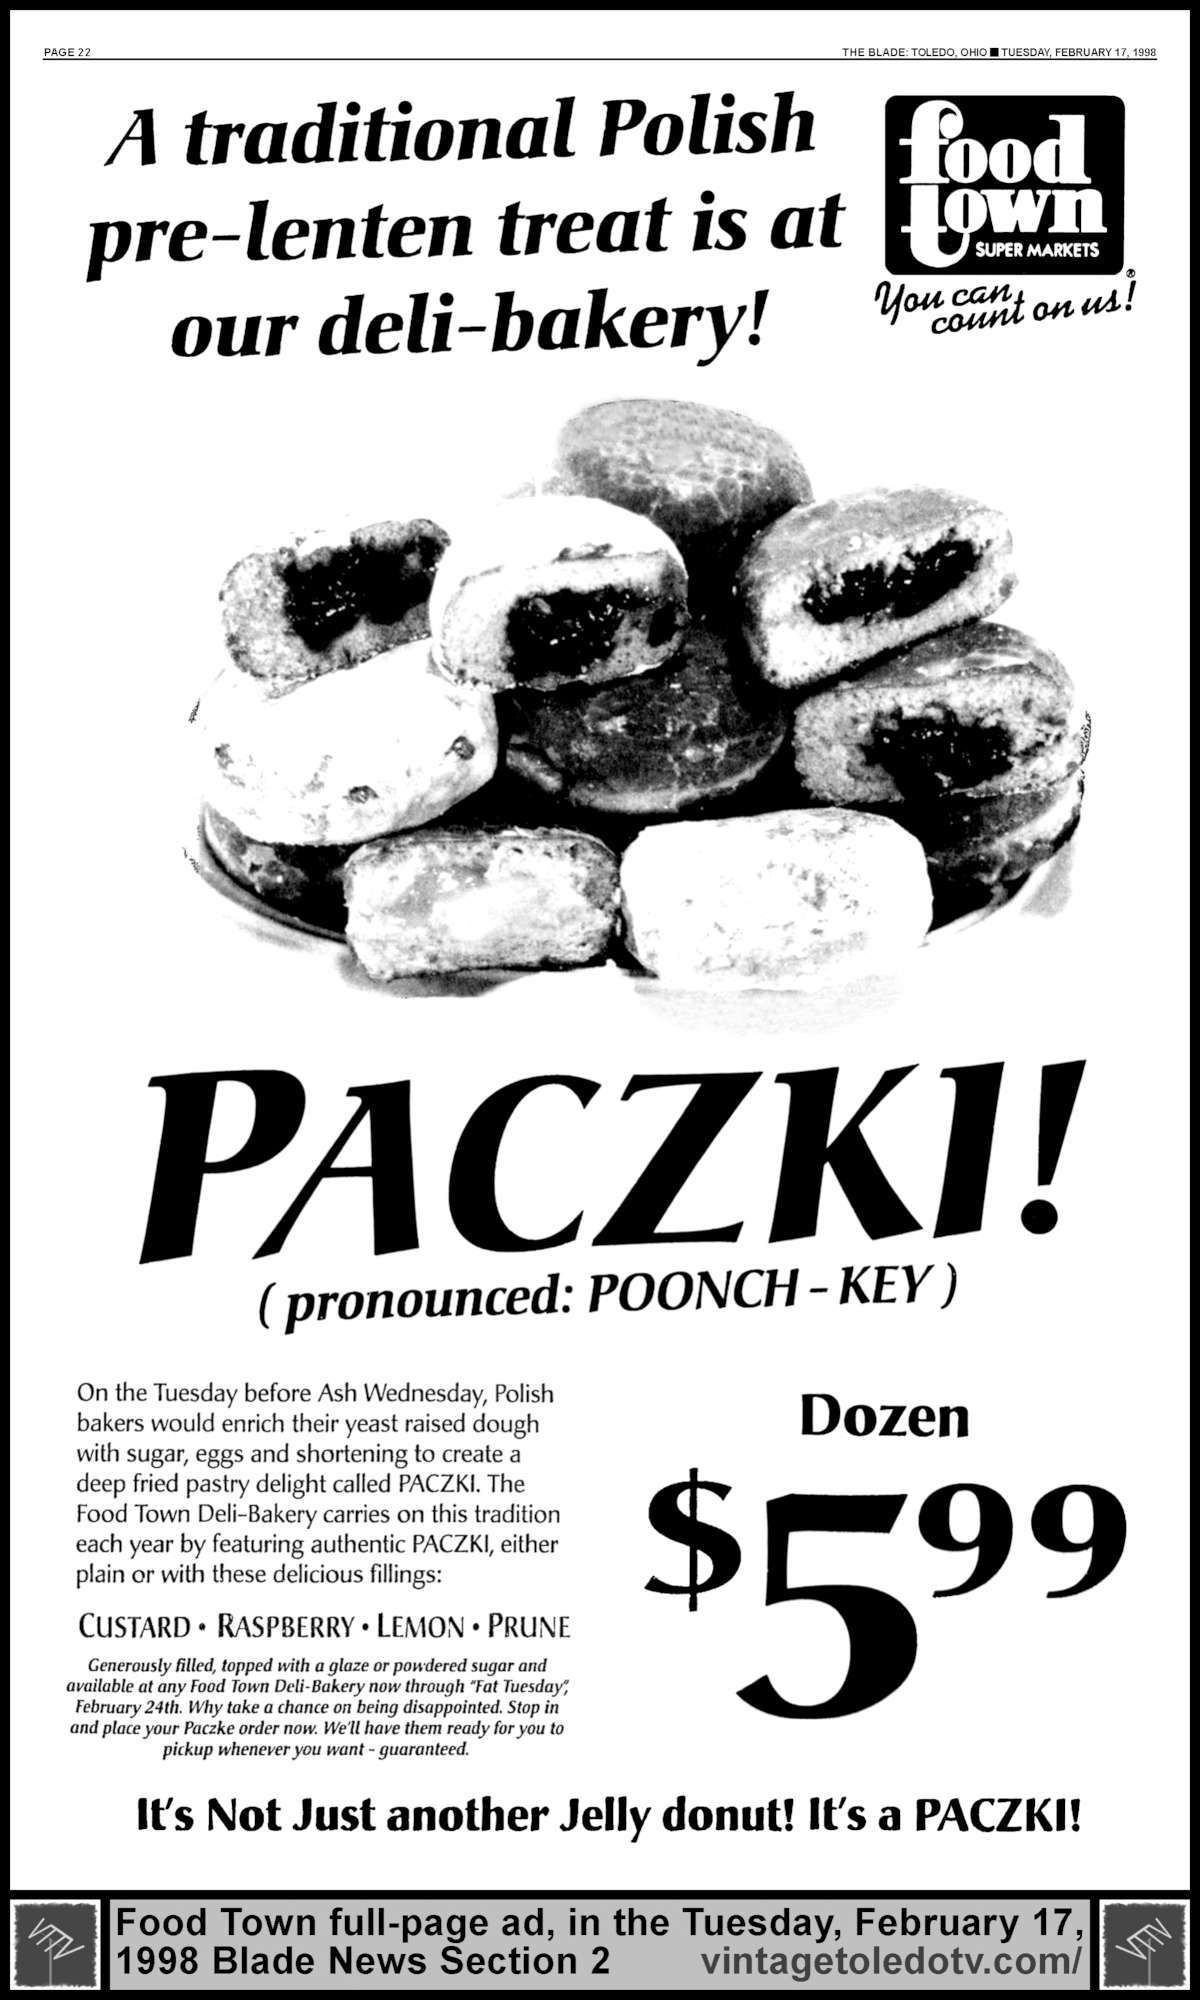 Vintage Toledo TV - Other Vintage Print Ads - Paczki! at Food Town (Tue  2/17/98 full-pafe Blade ad) A traditional Polish pre-lenten treat is at our  ...